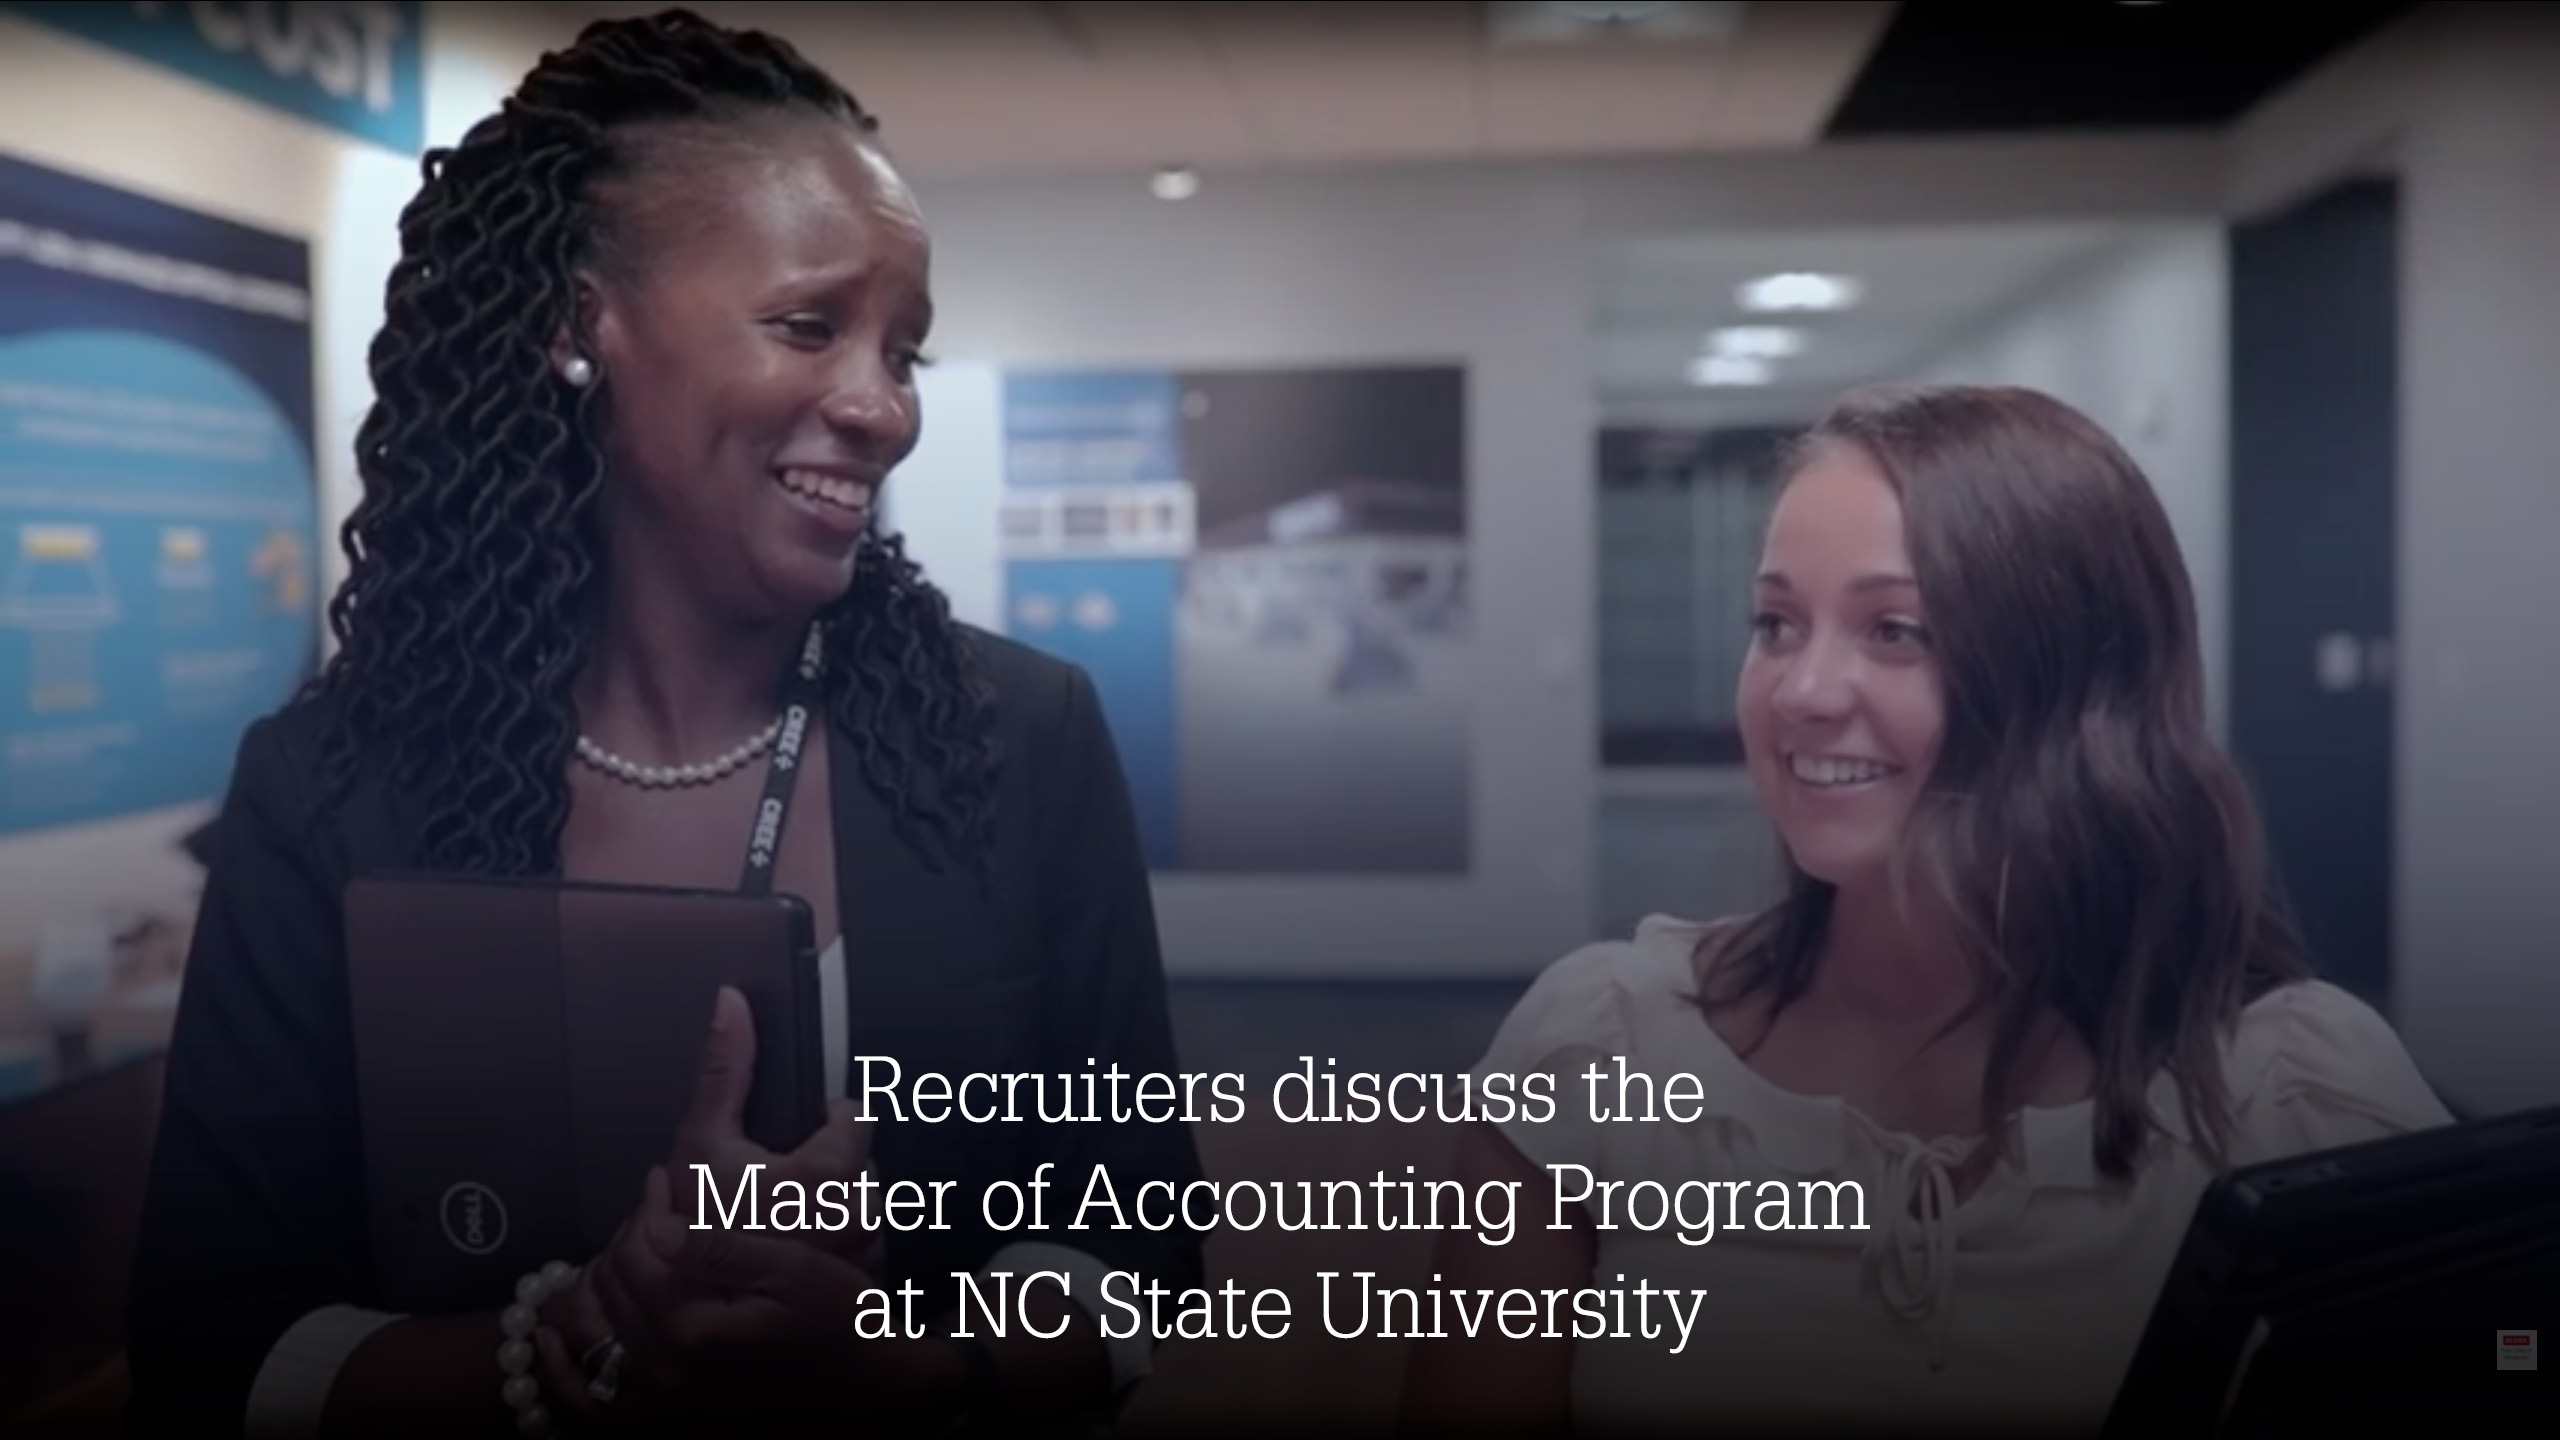 Cover image for Recruiters discuss the Master of Accounting Program, NCState University Youtube video